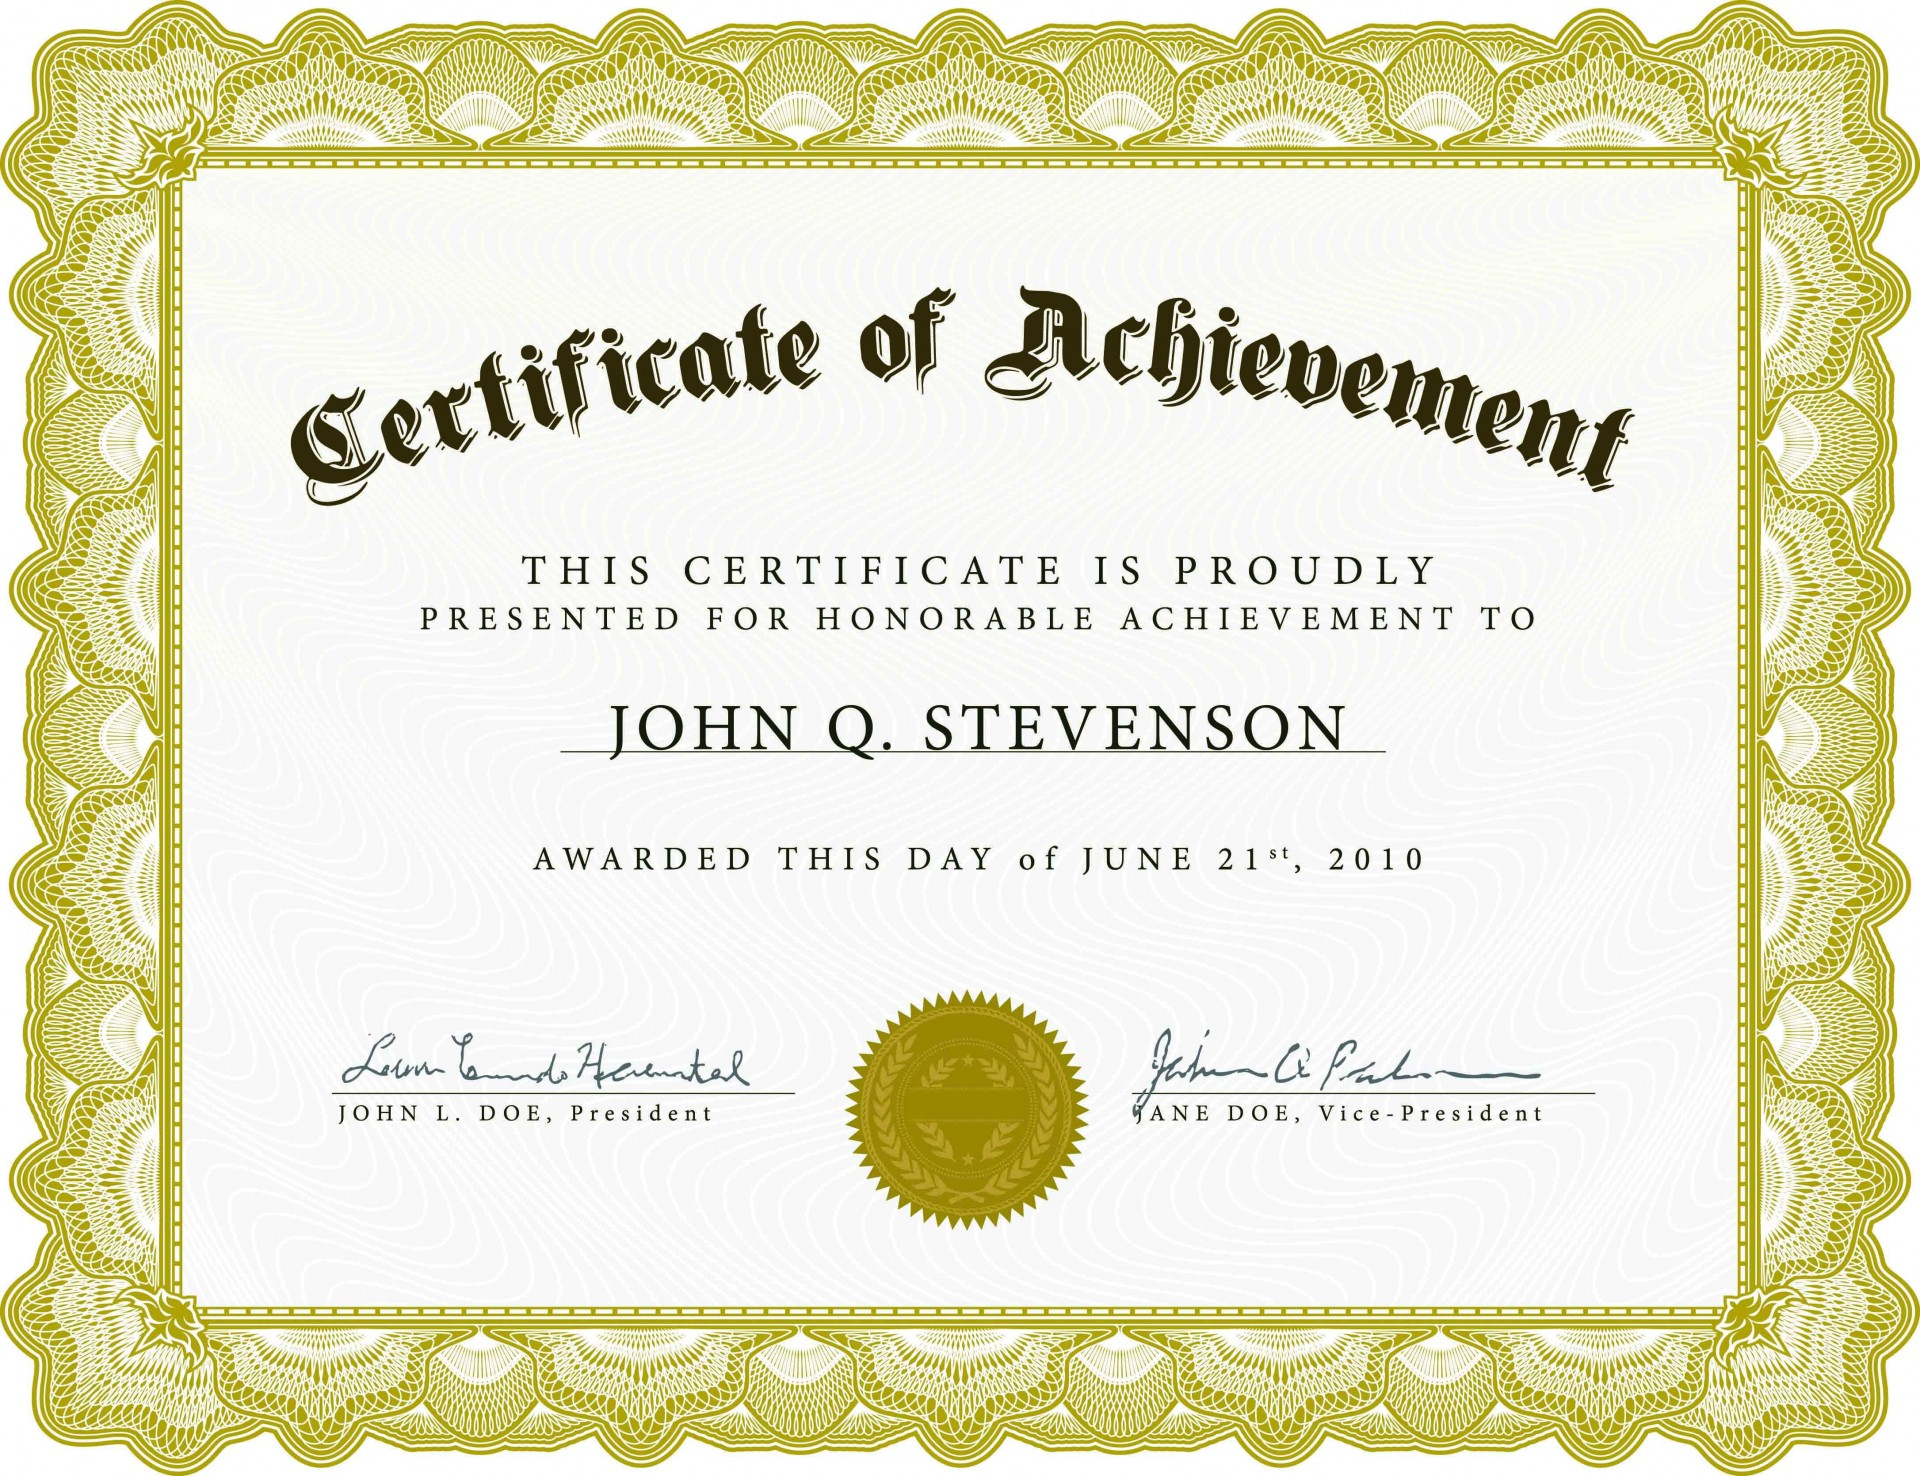 001 Staggering Free Template For Certificate Idea  Certificates Online Of Completion Attendance Printable Participation1920